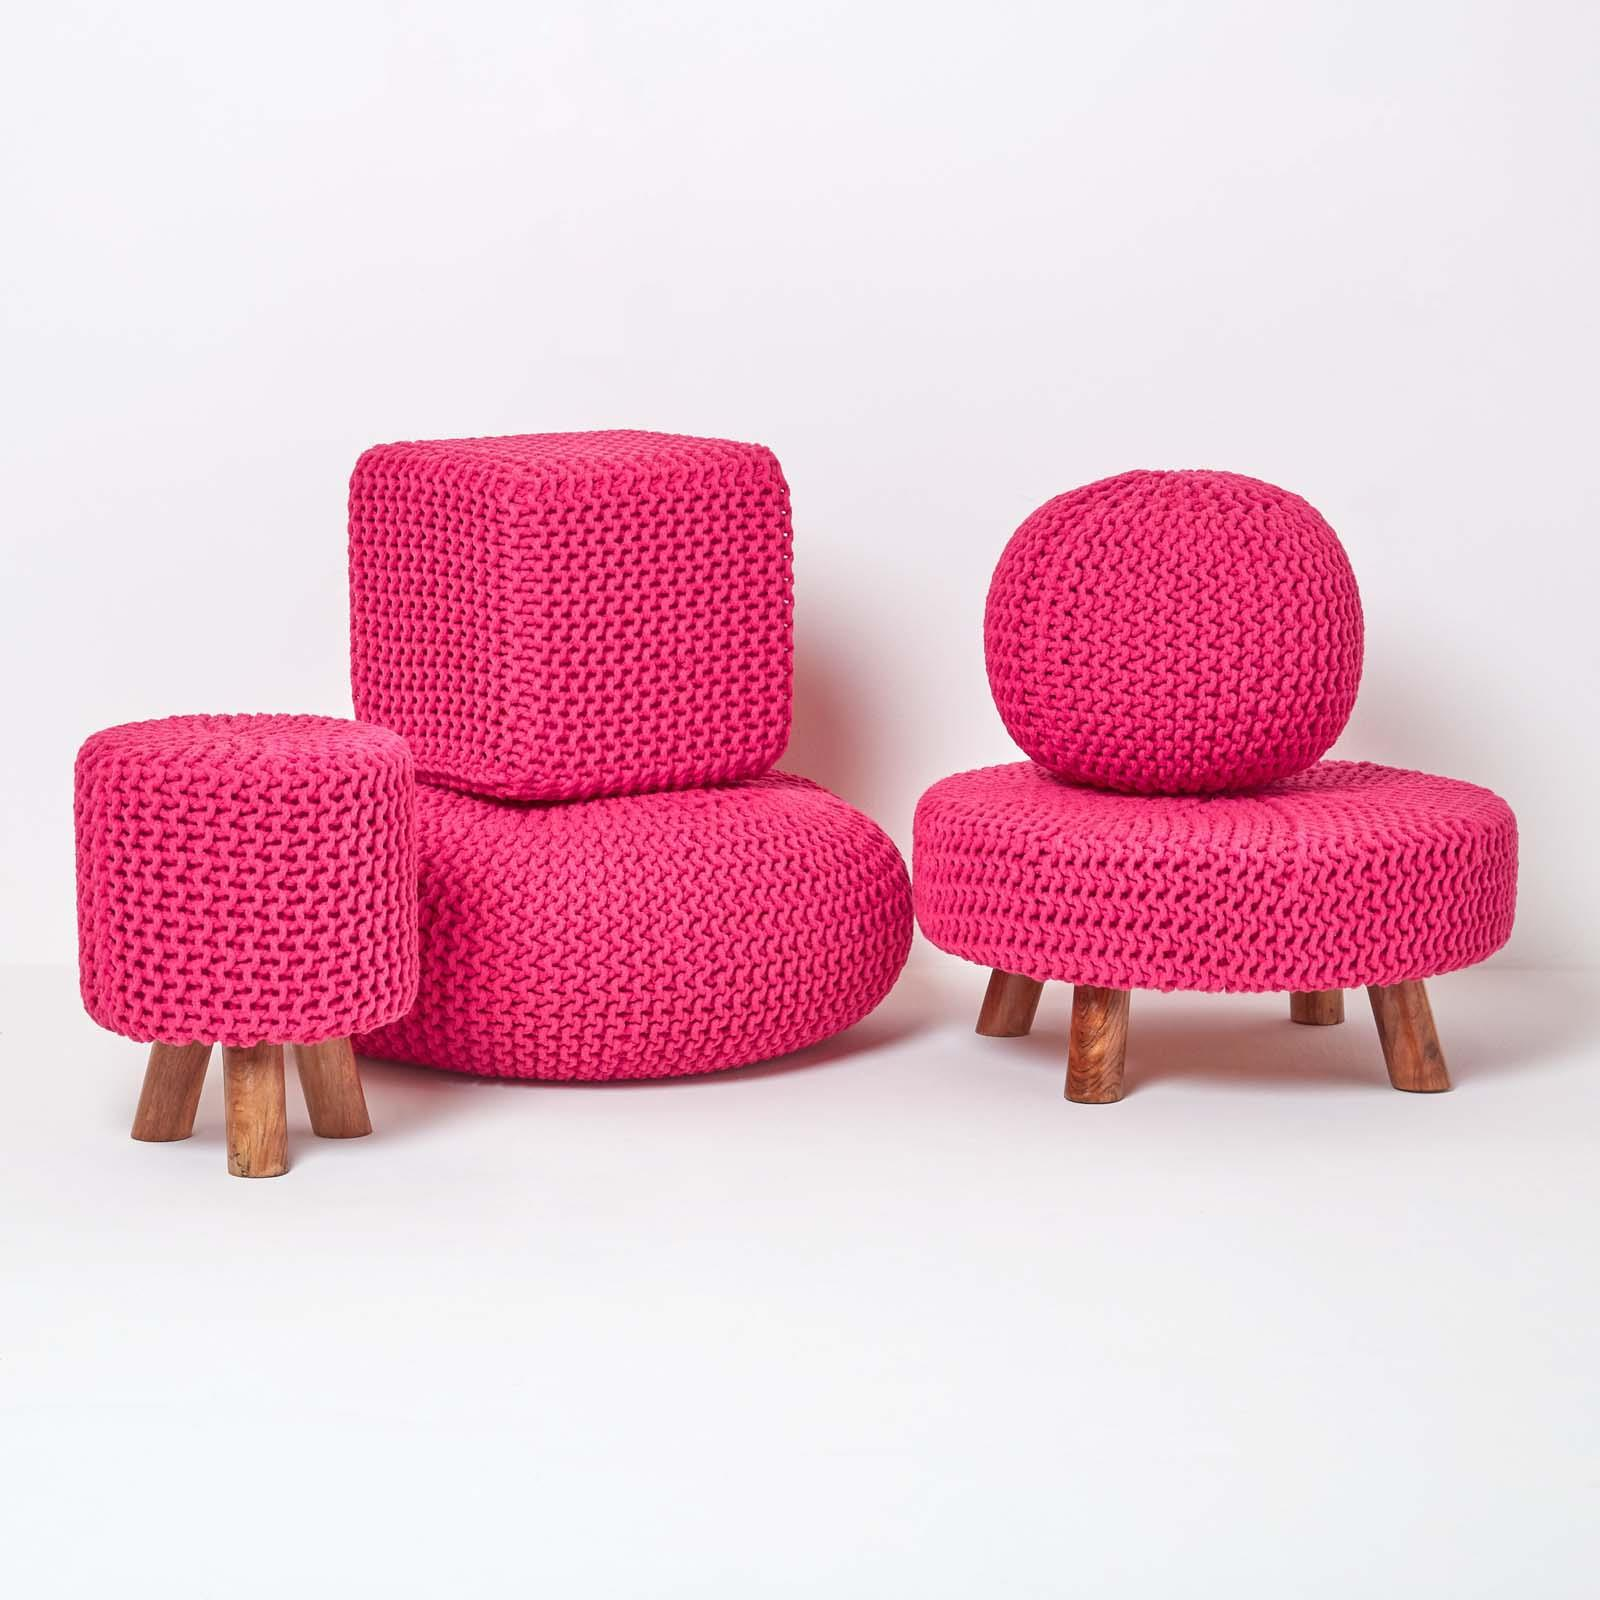 Hand-Knitted-100-Cotton-Pouffes-Round-Sphere-Or-Cube-Square-Chunky-Footstools thumbnail 71